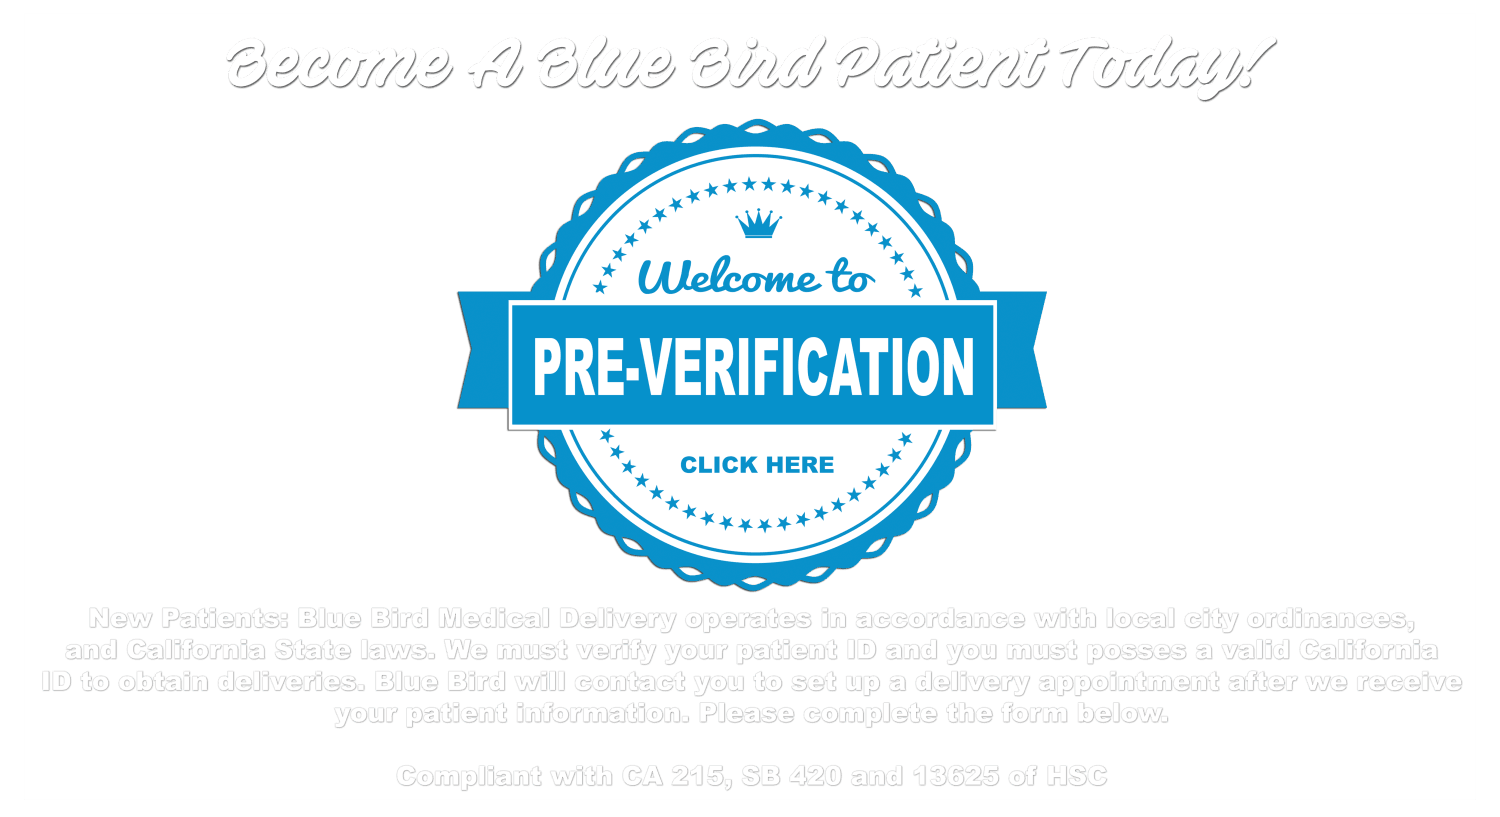 Verification - Blue Bird RX on physical medical forms, diagnosis medical forms, patient info forms, new patient charting, new patient signs, patient health forms, new patient intake form, emergency medical forms, new patient admissions, hipaa patient consent forms, new patient form template, printable nursing assessment forms, new patient information form, insurance medical forms, surgery medical forms, blank patient information forms, blank medical history forms, printable doctor fill out forms, medical triage forms, new baby medical forms,